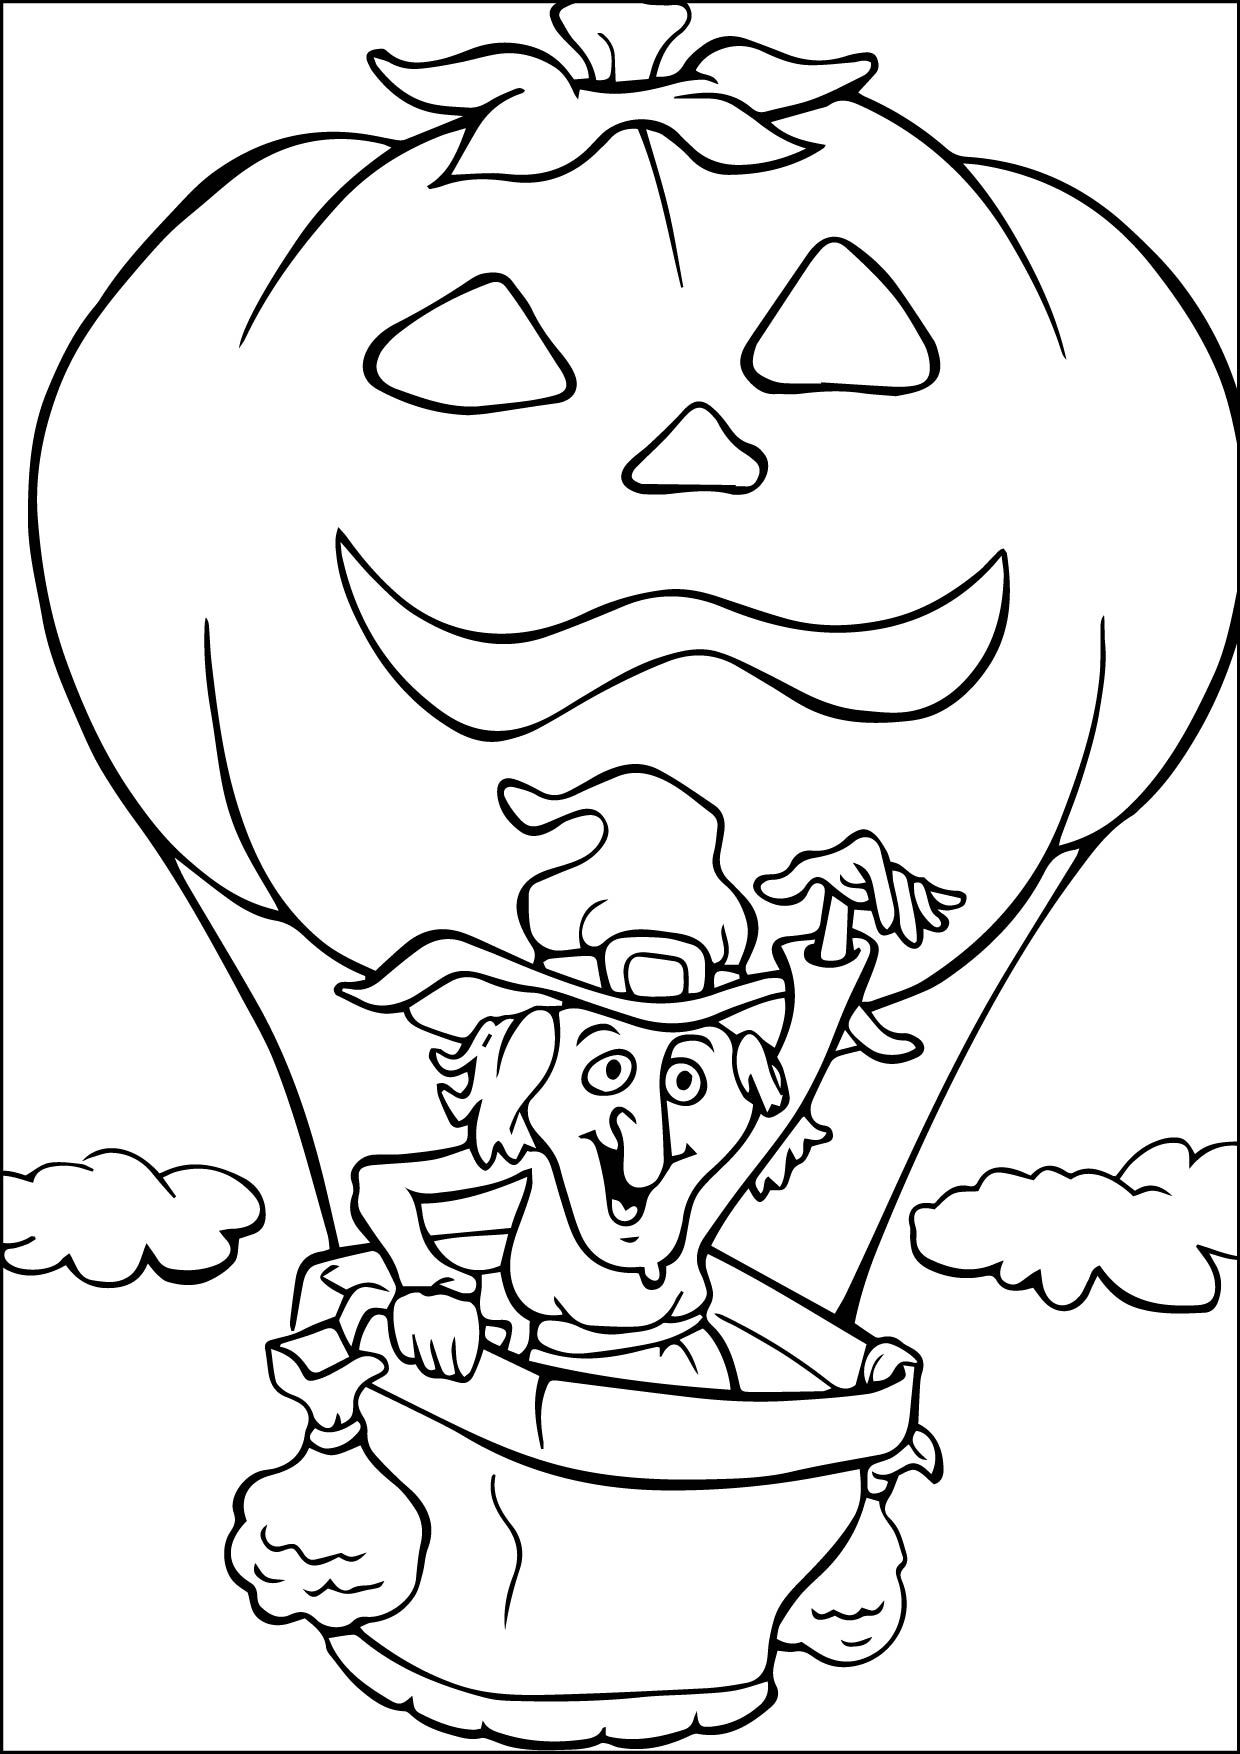 Awesome coloring page mcoloring pinterest